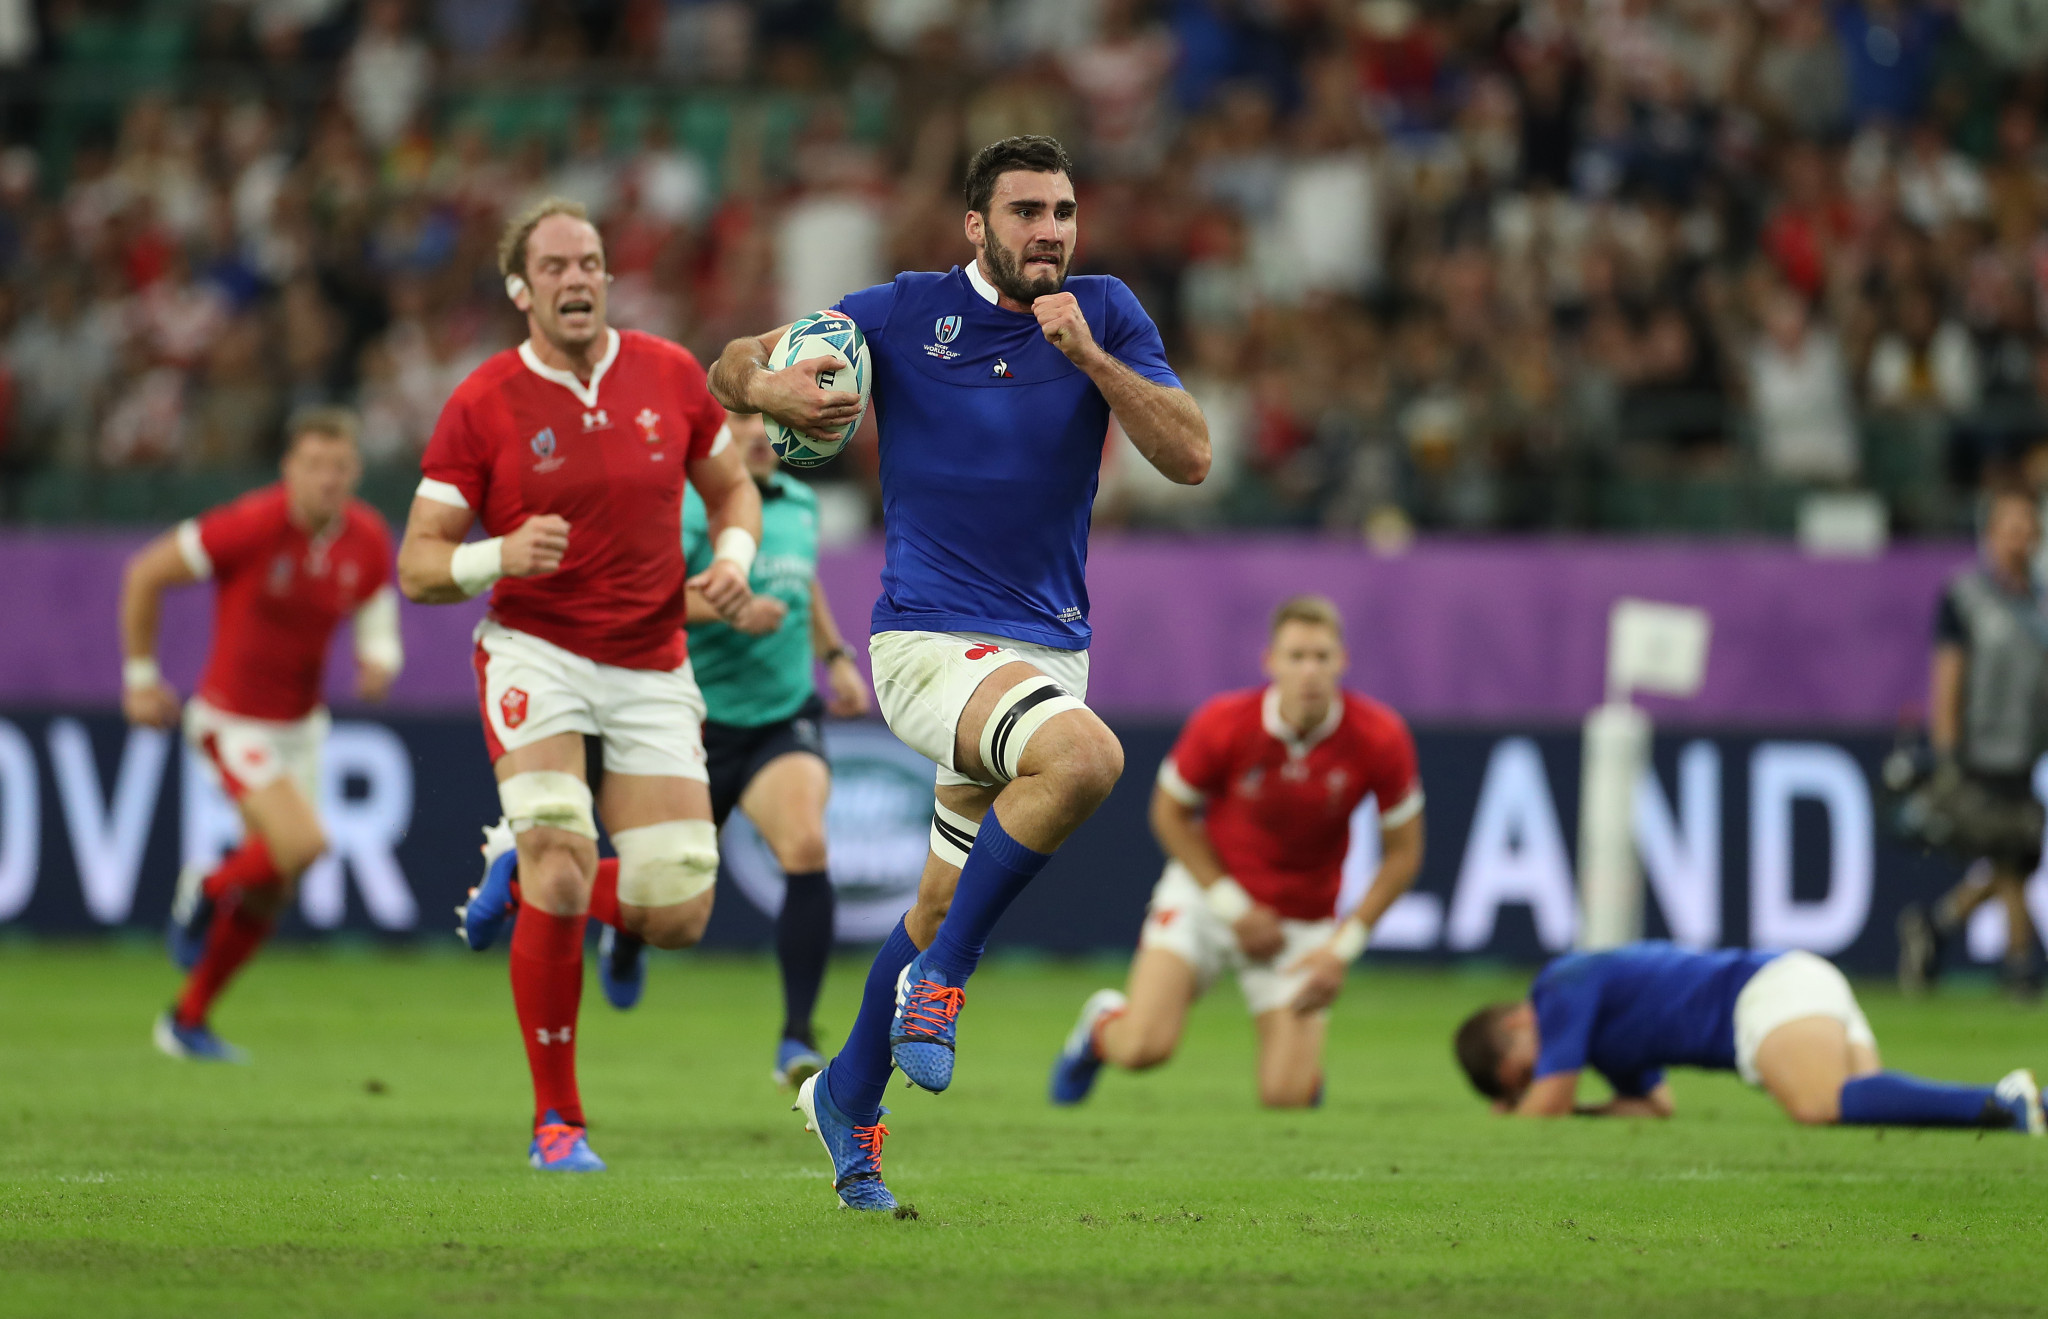 France were the better team in the second half, leading 19-10 ©Getty Images